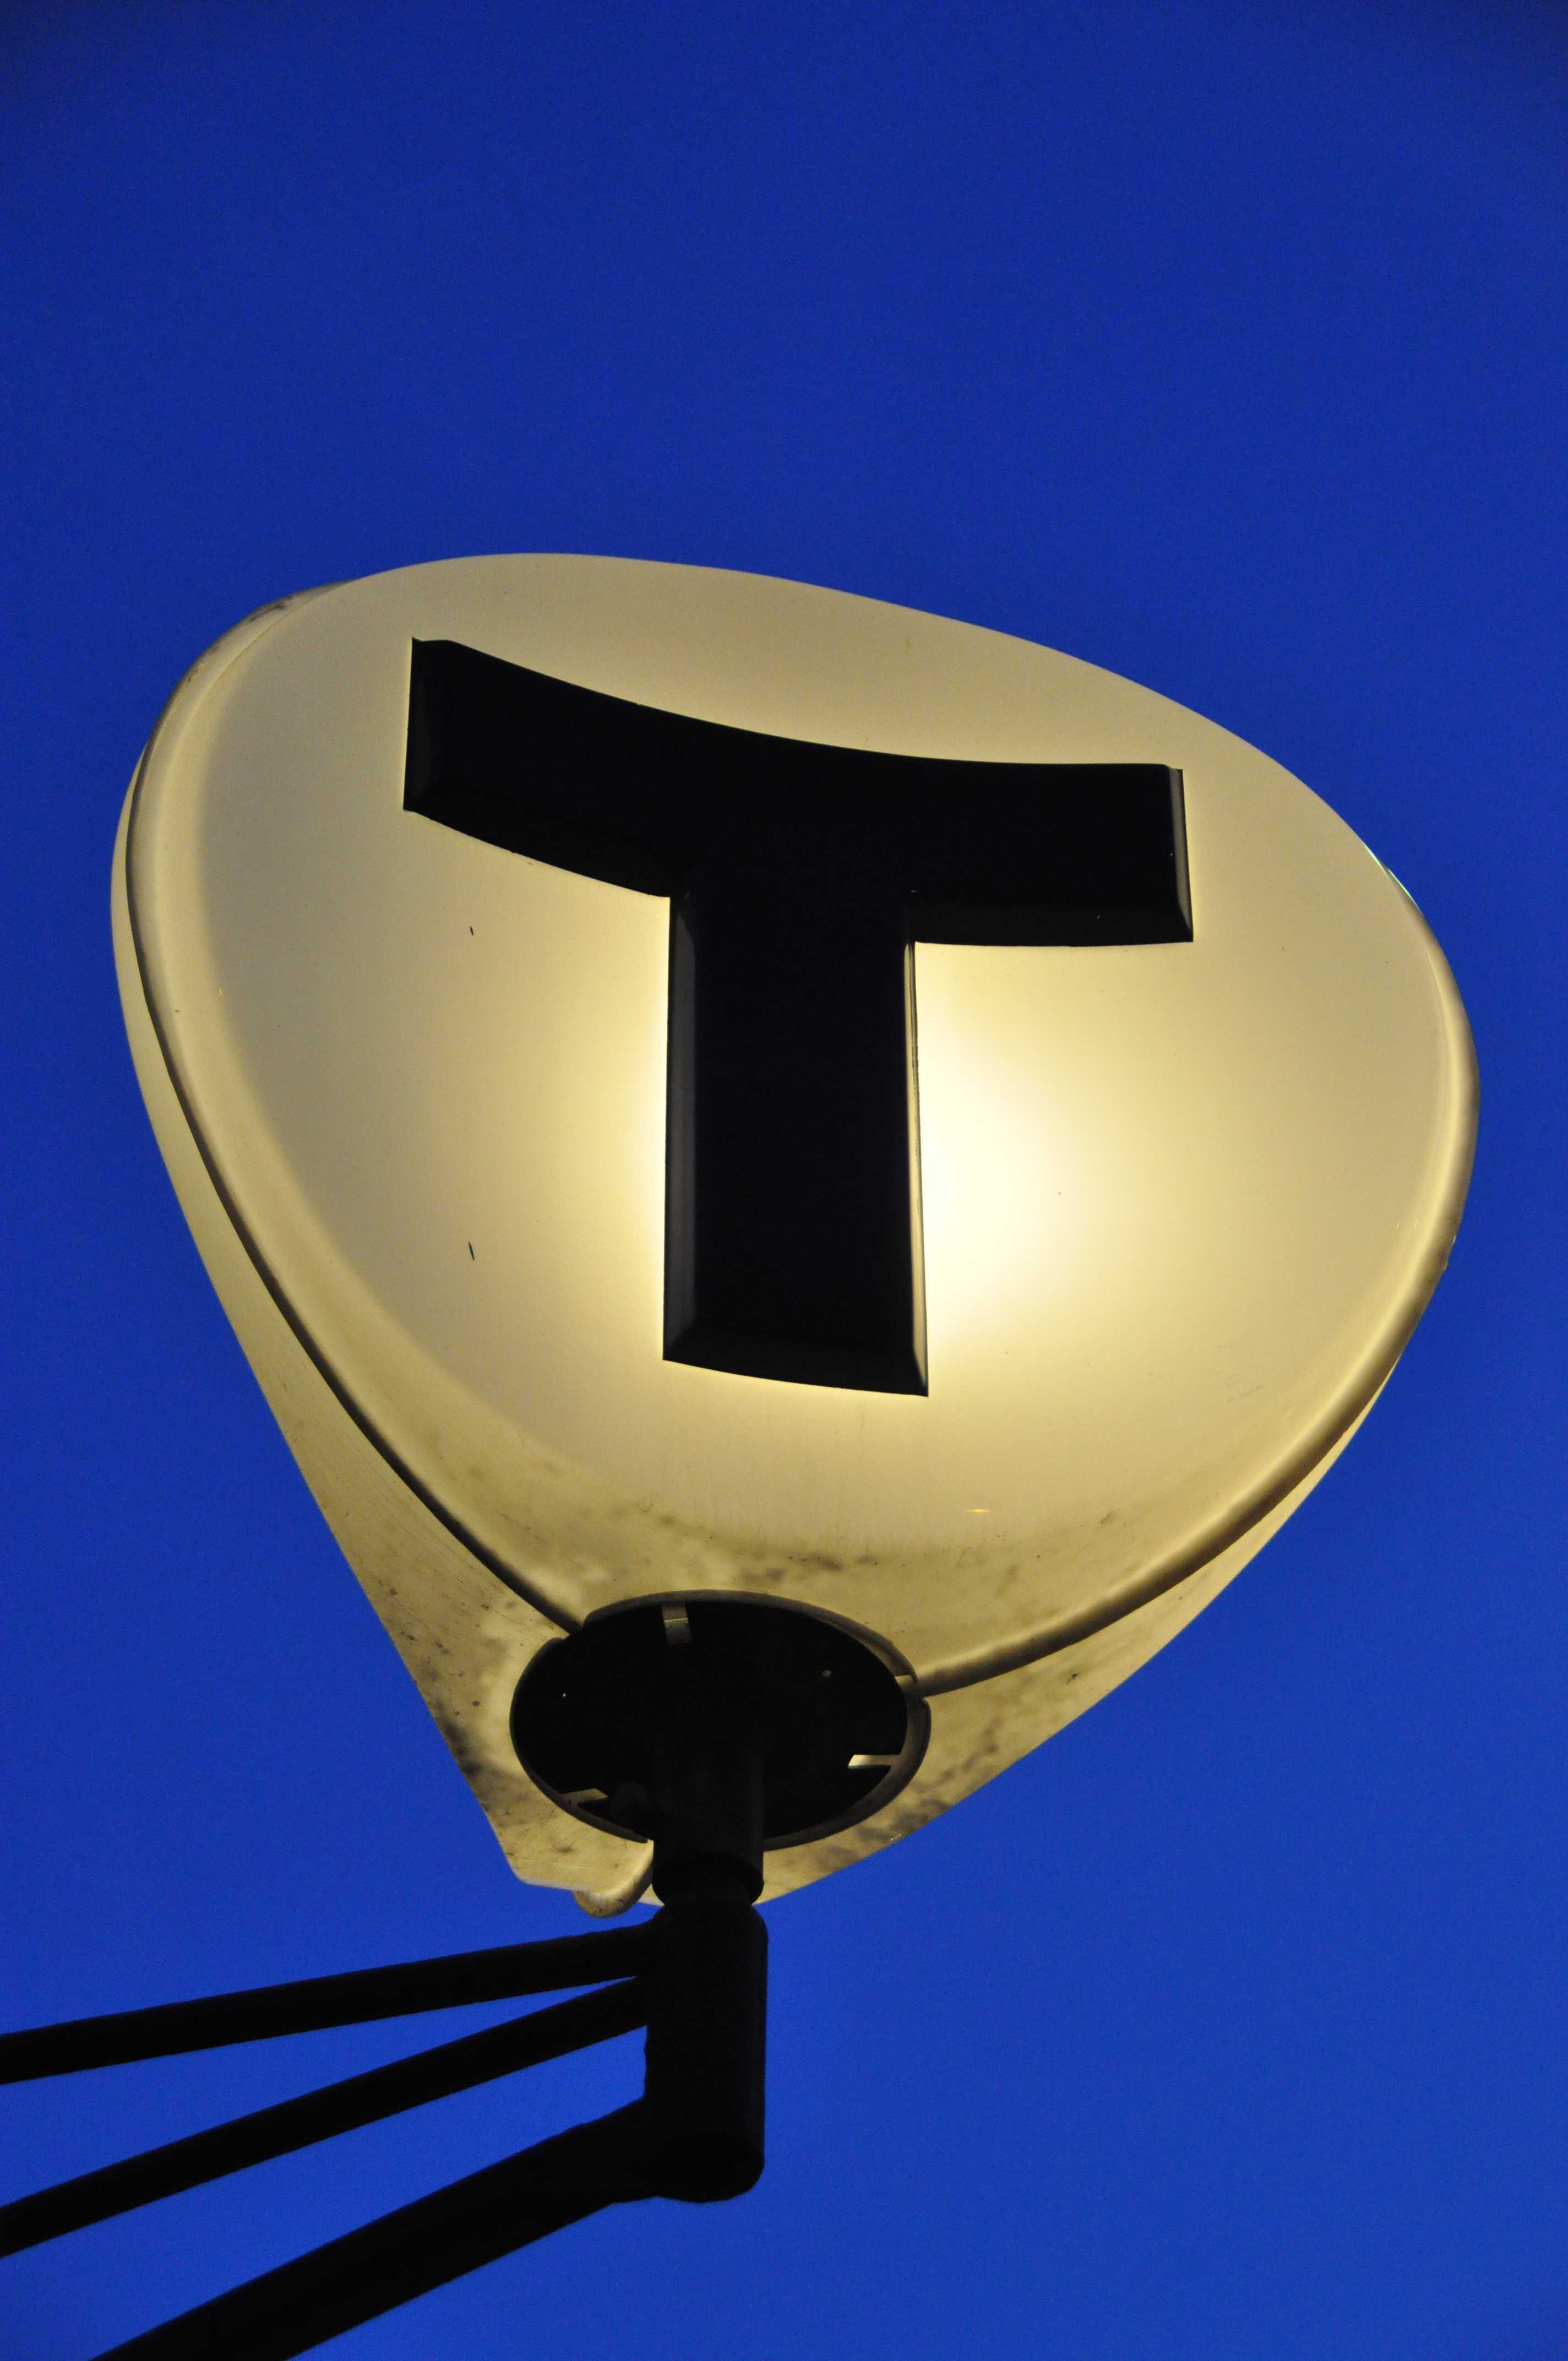 File:T sign.JPG - Wikimedia Commons